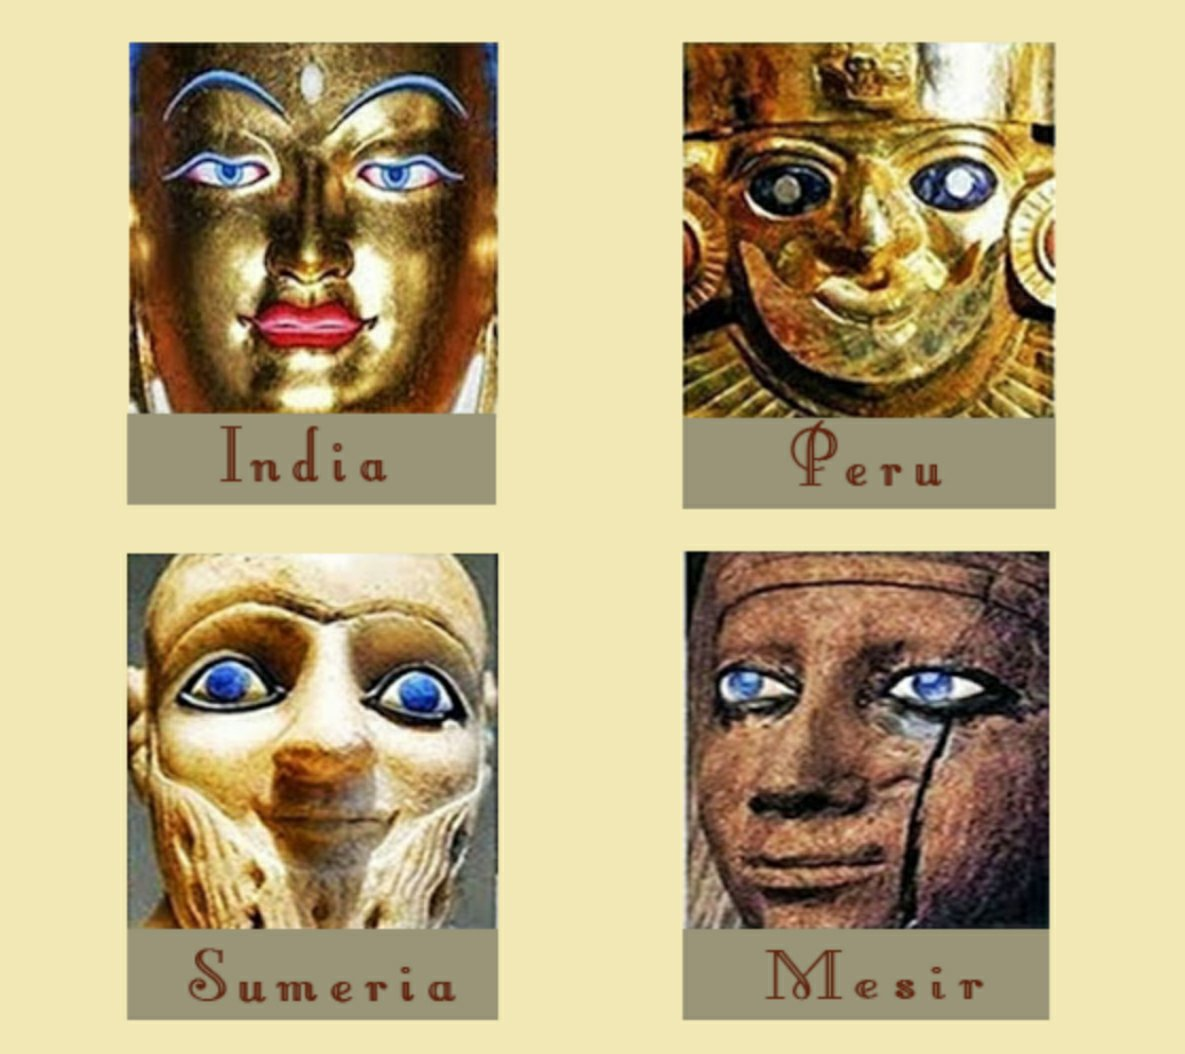 Many ancient civilizations depicted beings with blue eyes.